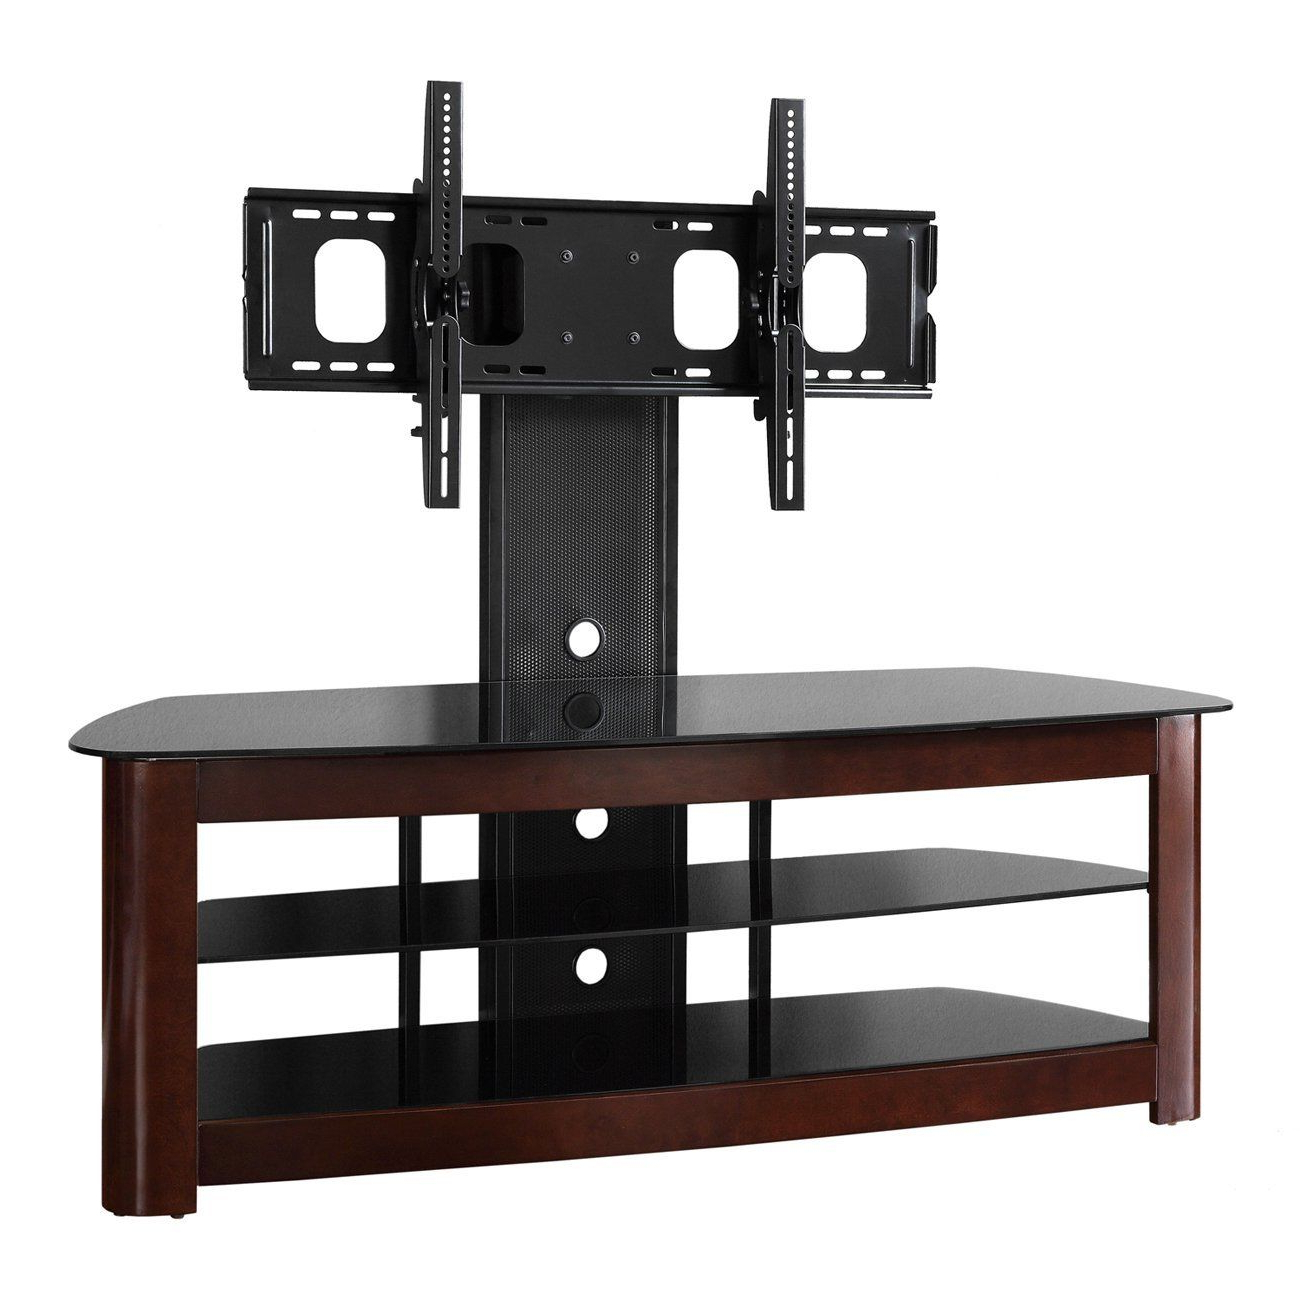 Preferred 70 Inch Tv Stand For Home Theater (Gallery 4 of 20)